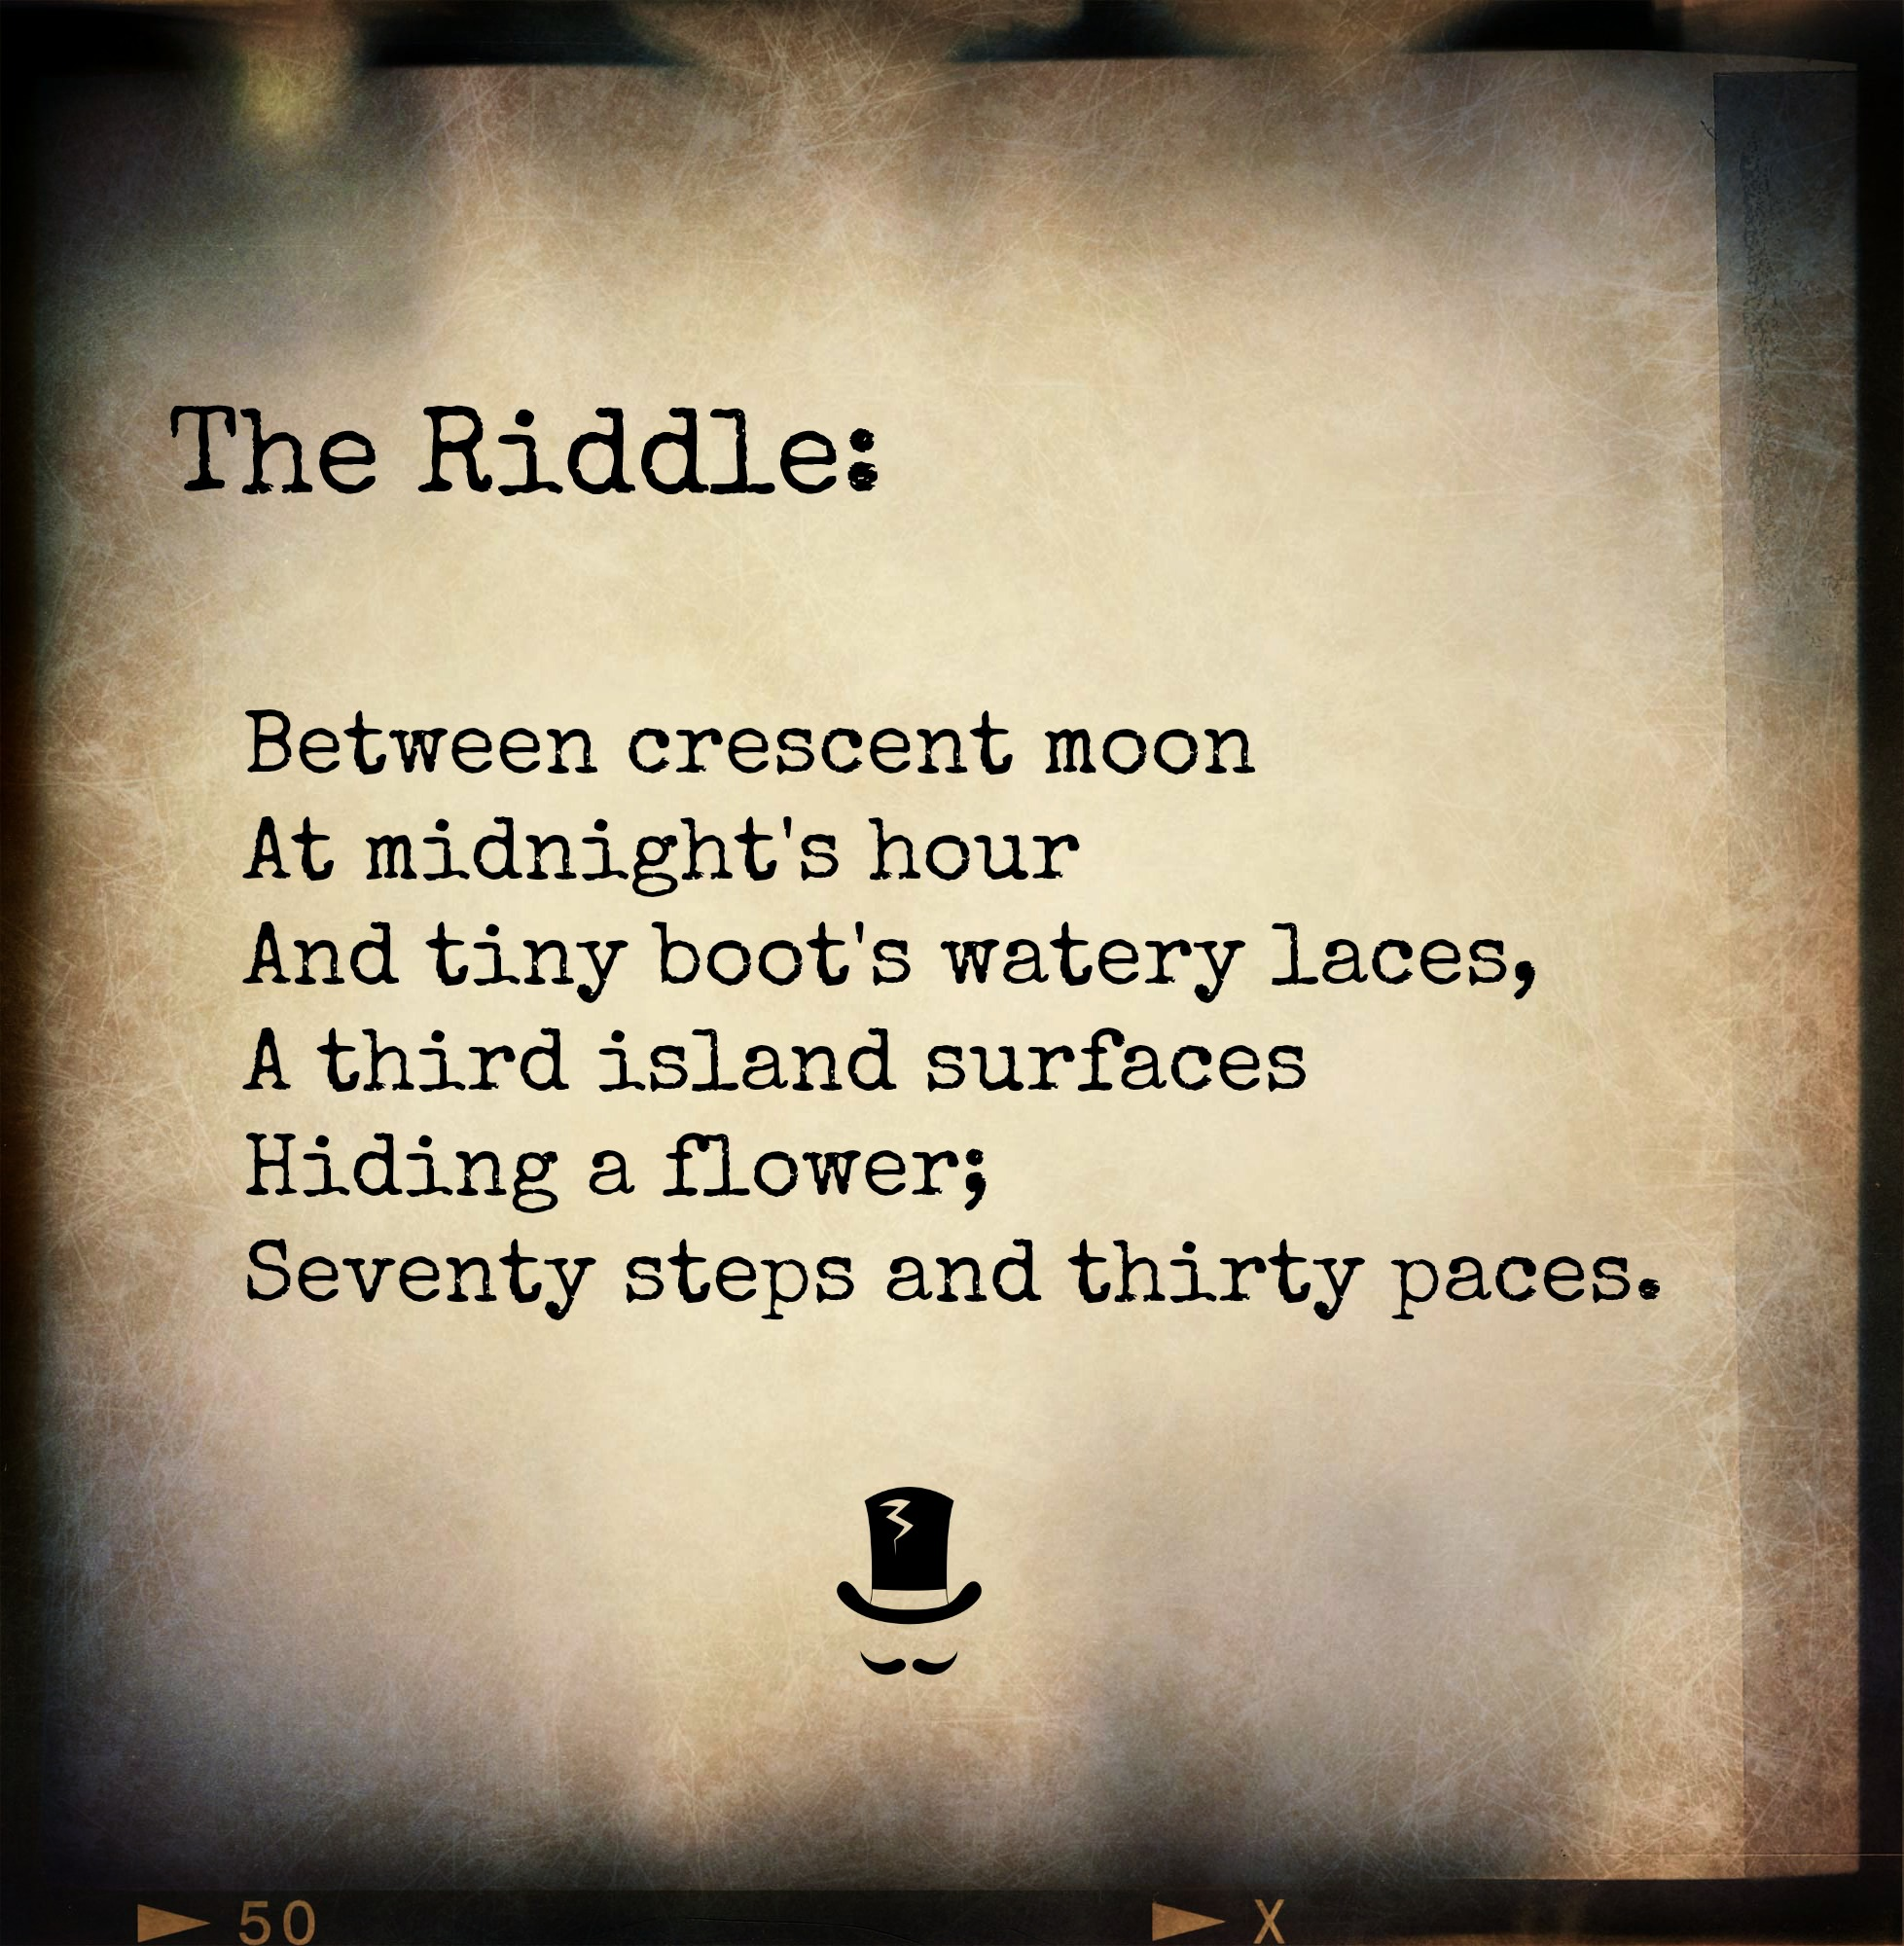 The Riddle 2